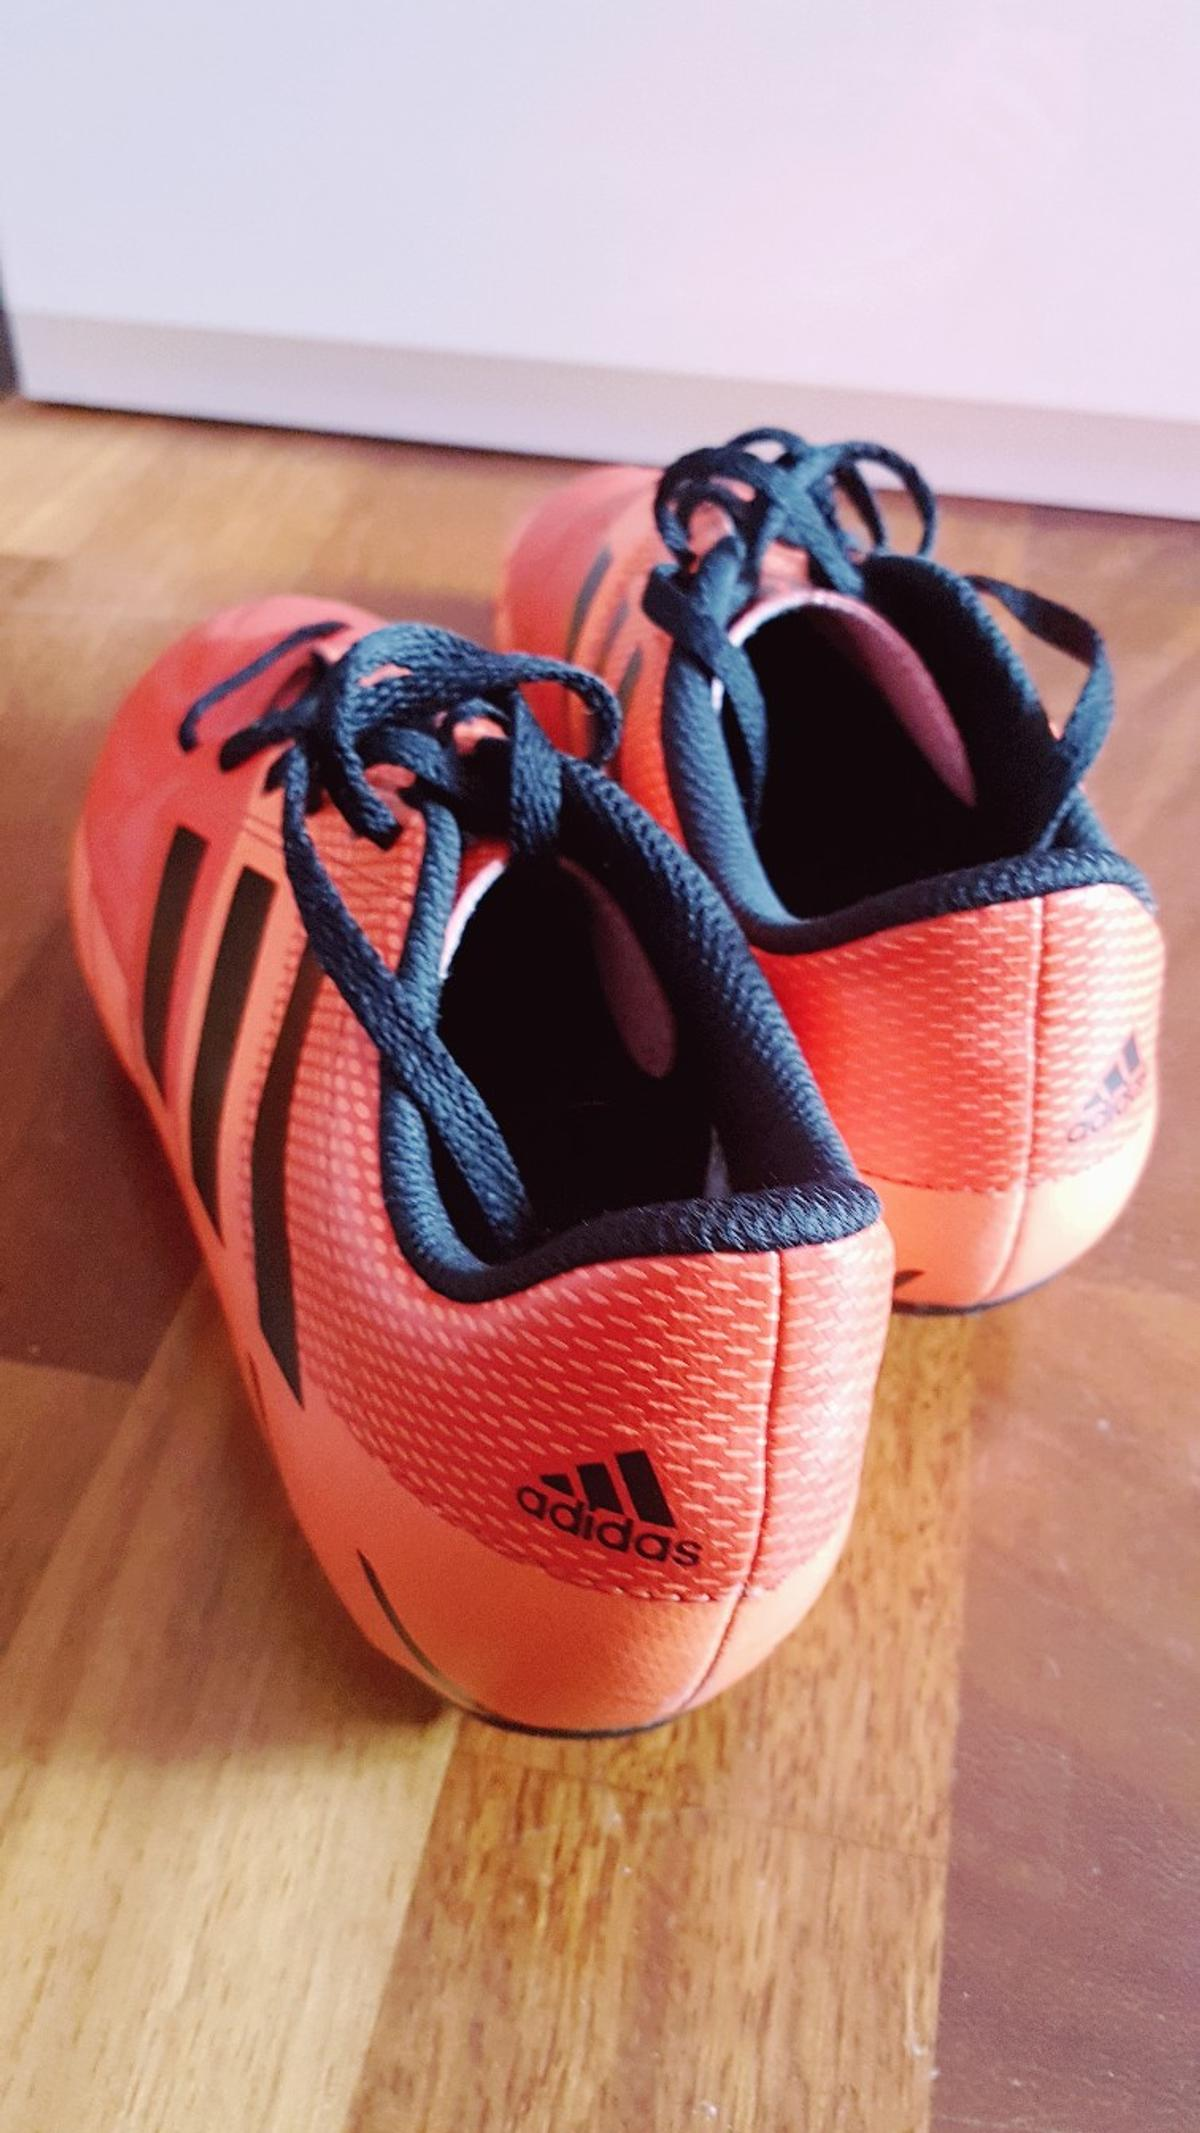 Essen €20 fußball schuhe for 00 adidas in 45309 for sale